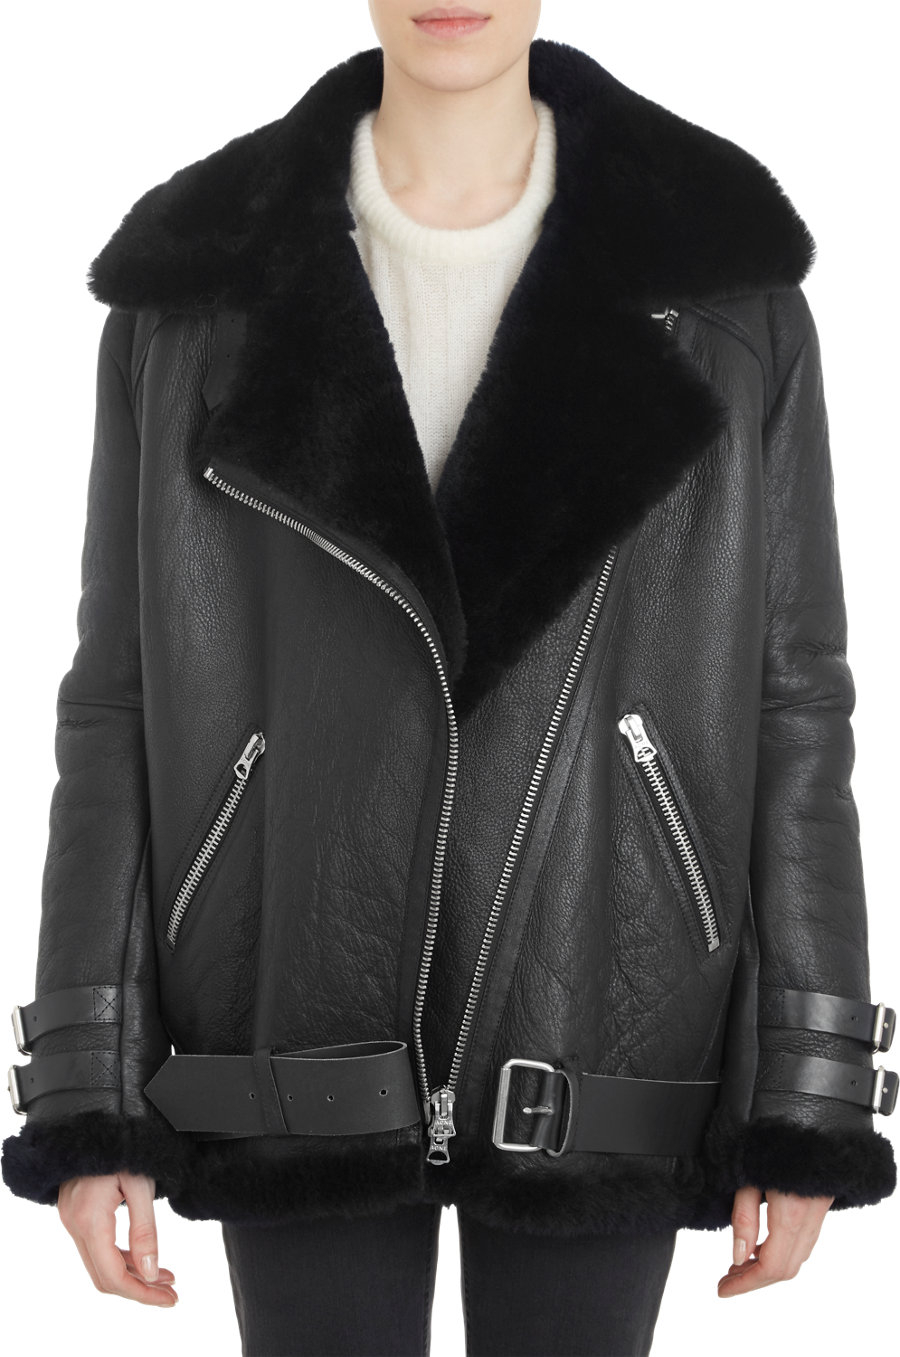 Womens Shearling Lined Black Leather Jacket